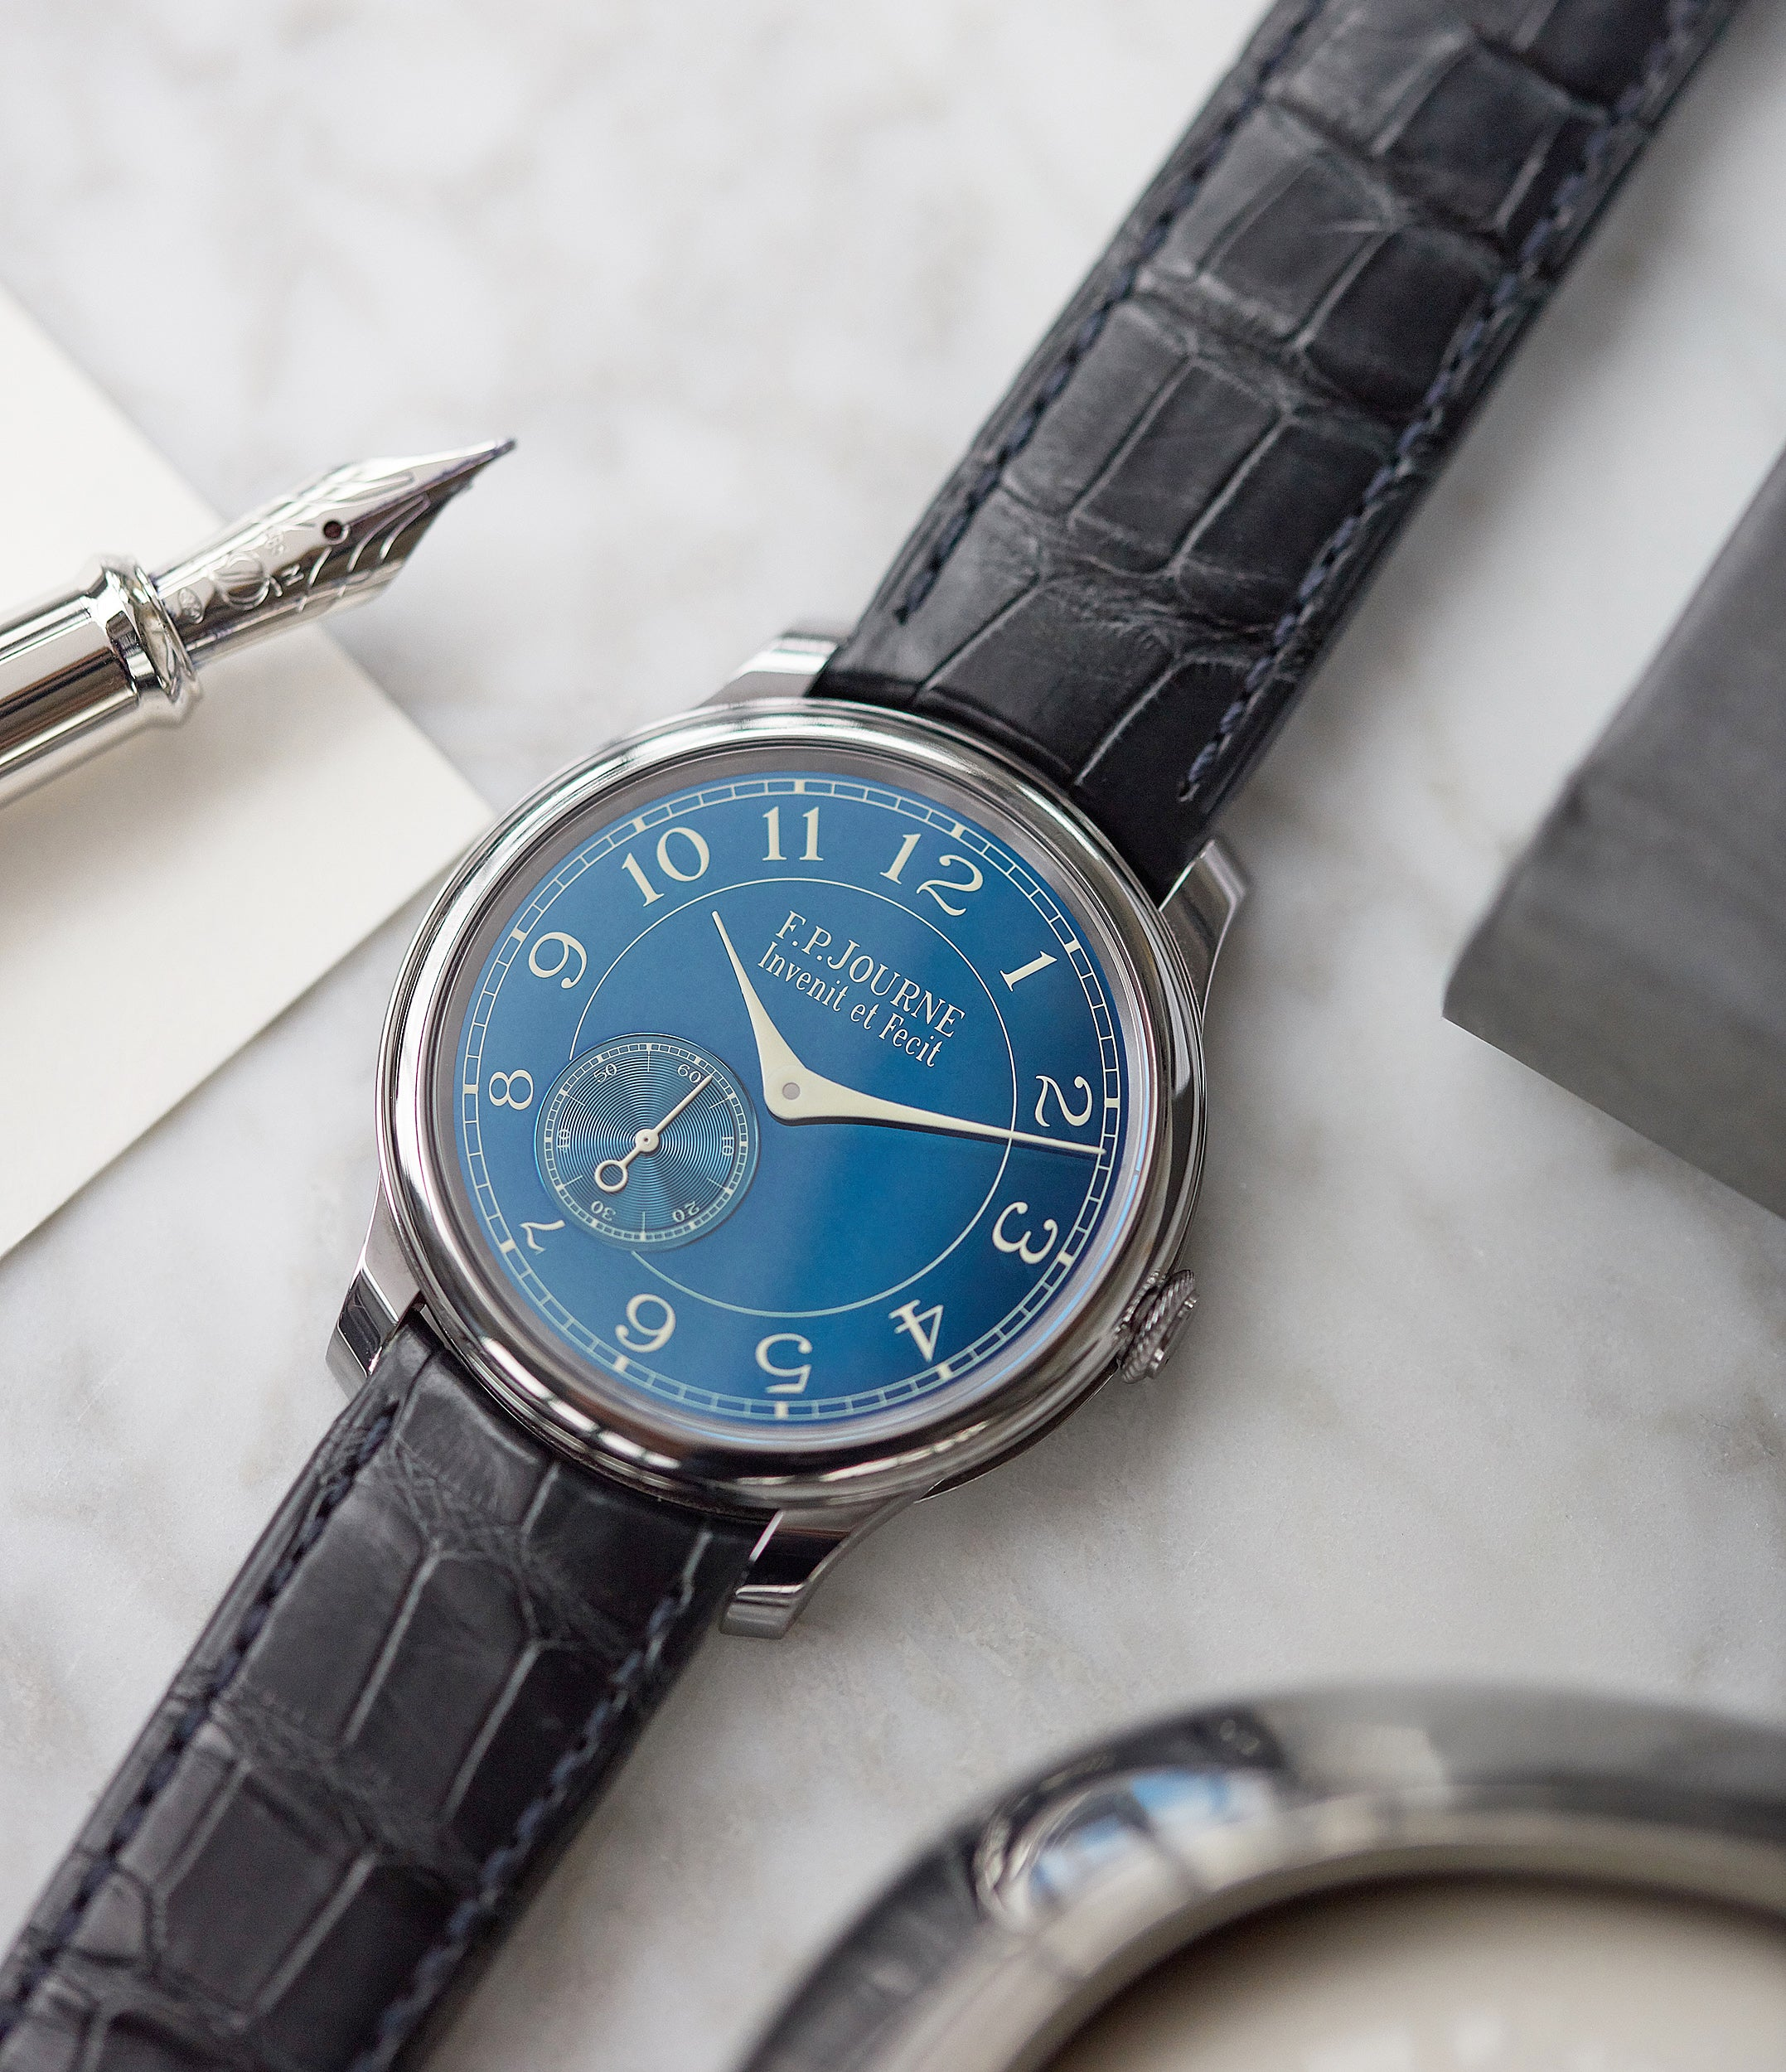 pre-owned F. P. Journe Chronometre Bleu tantalum blue dial rare dress watch for sale online at A Collected Man London approved reseller of independent watchmakers